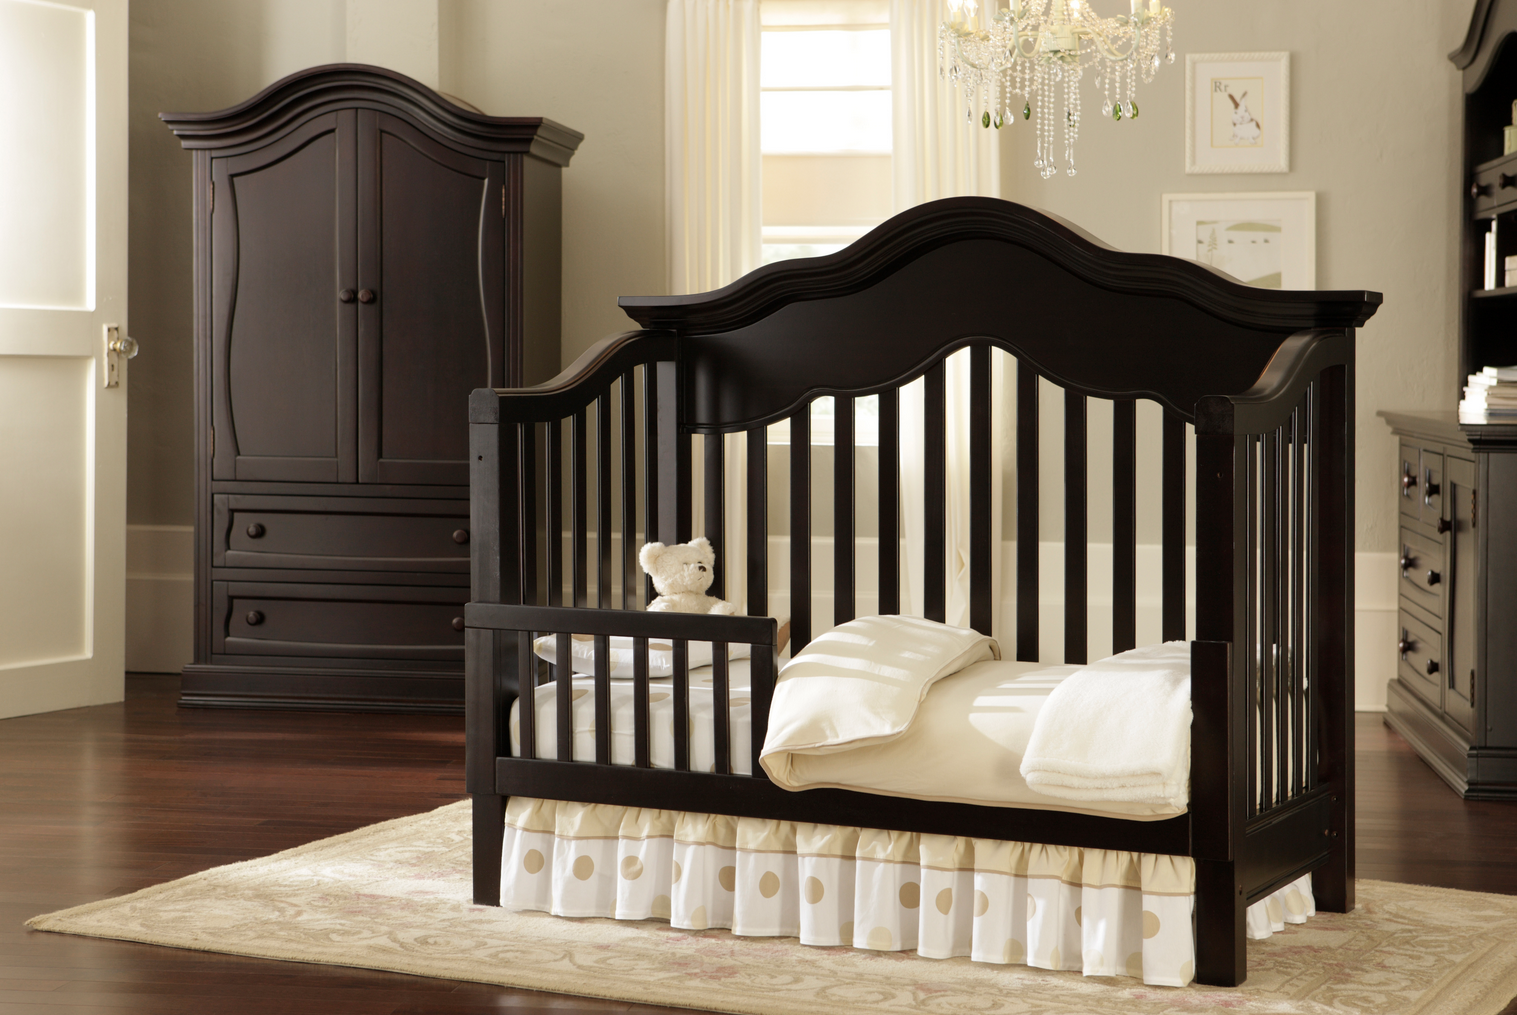 Baby Appleseed Millbury Convertible Crib in Espresso ...